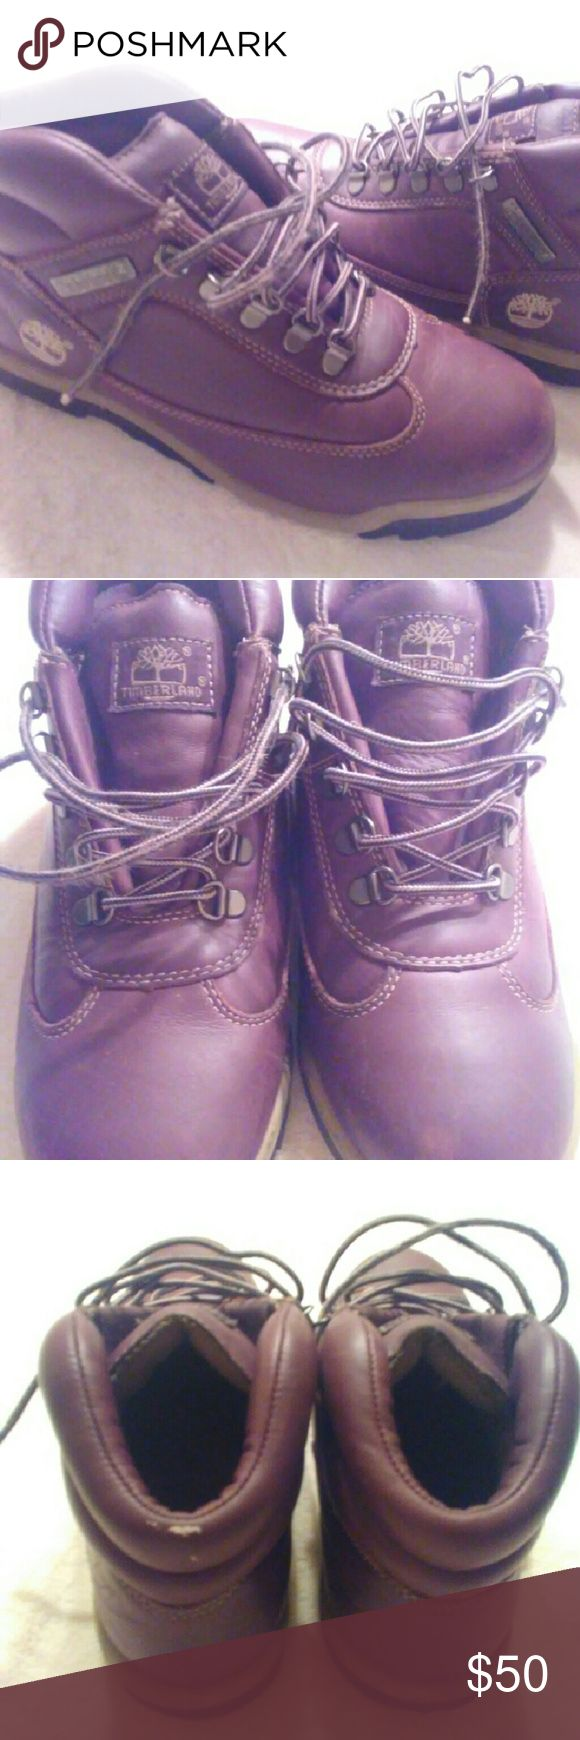 Junior's Timberland Boots Brown leather boots. Junior's 7.5 good condition just shoe laces are frizzed in certain areas as shown in pictures Timberland Shoes Boots